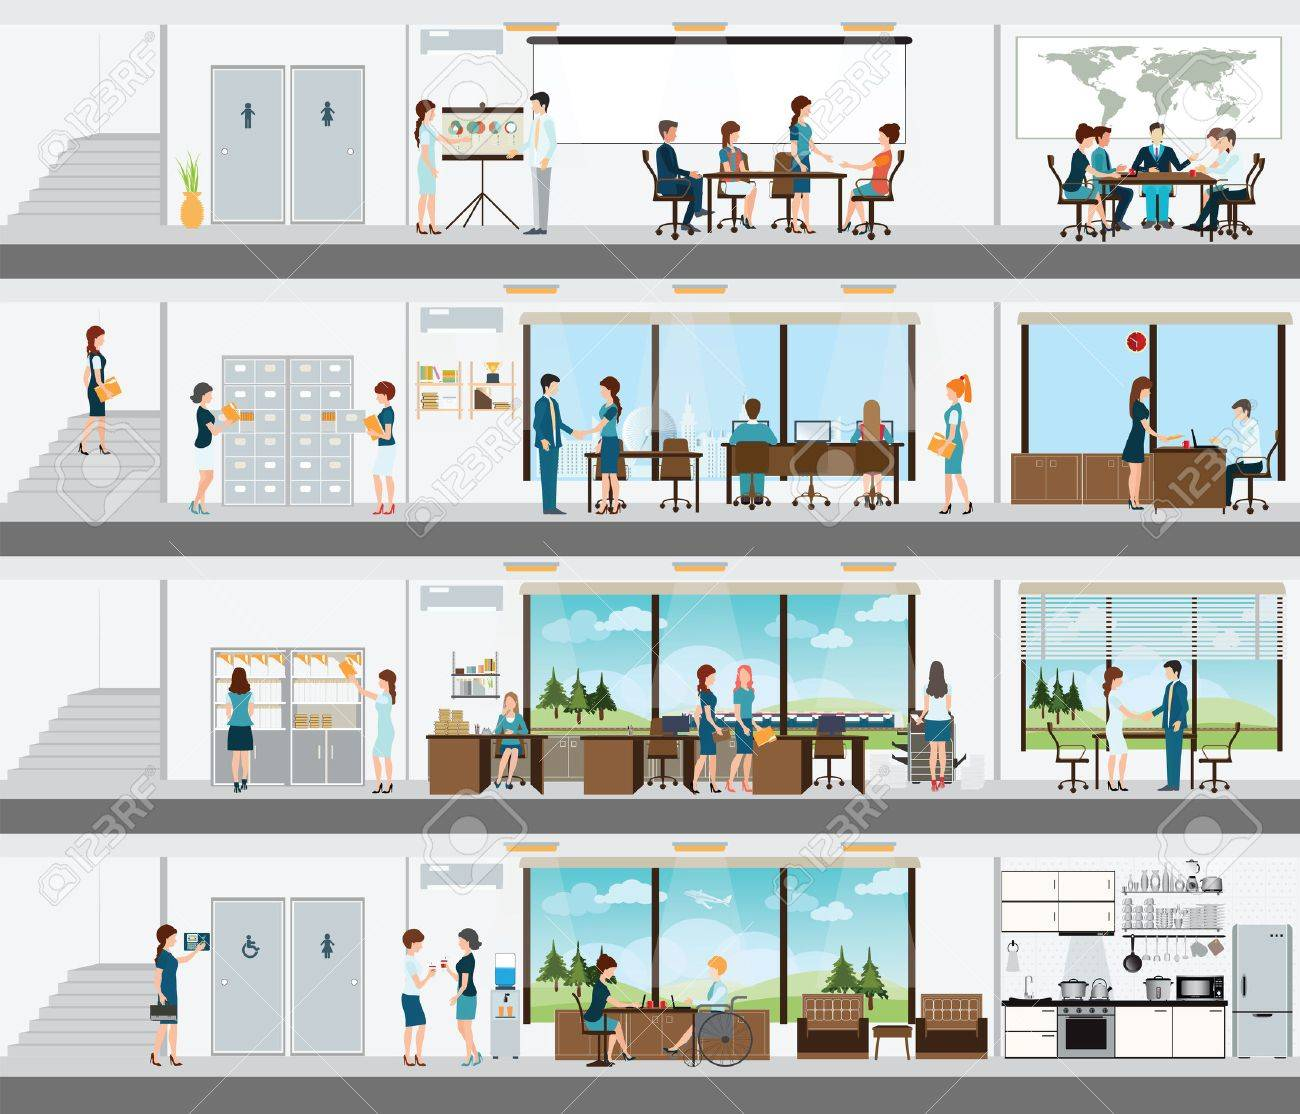 people in the interior of the building interior office building office interior people building an office desk